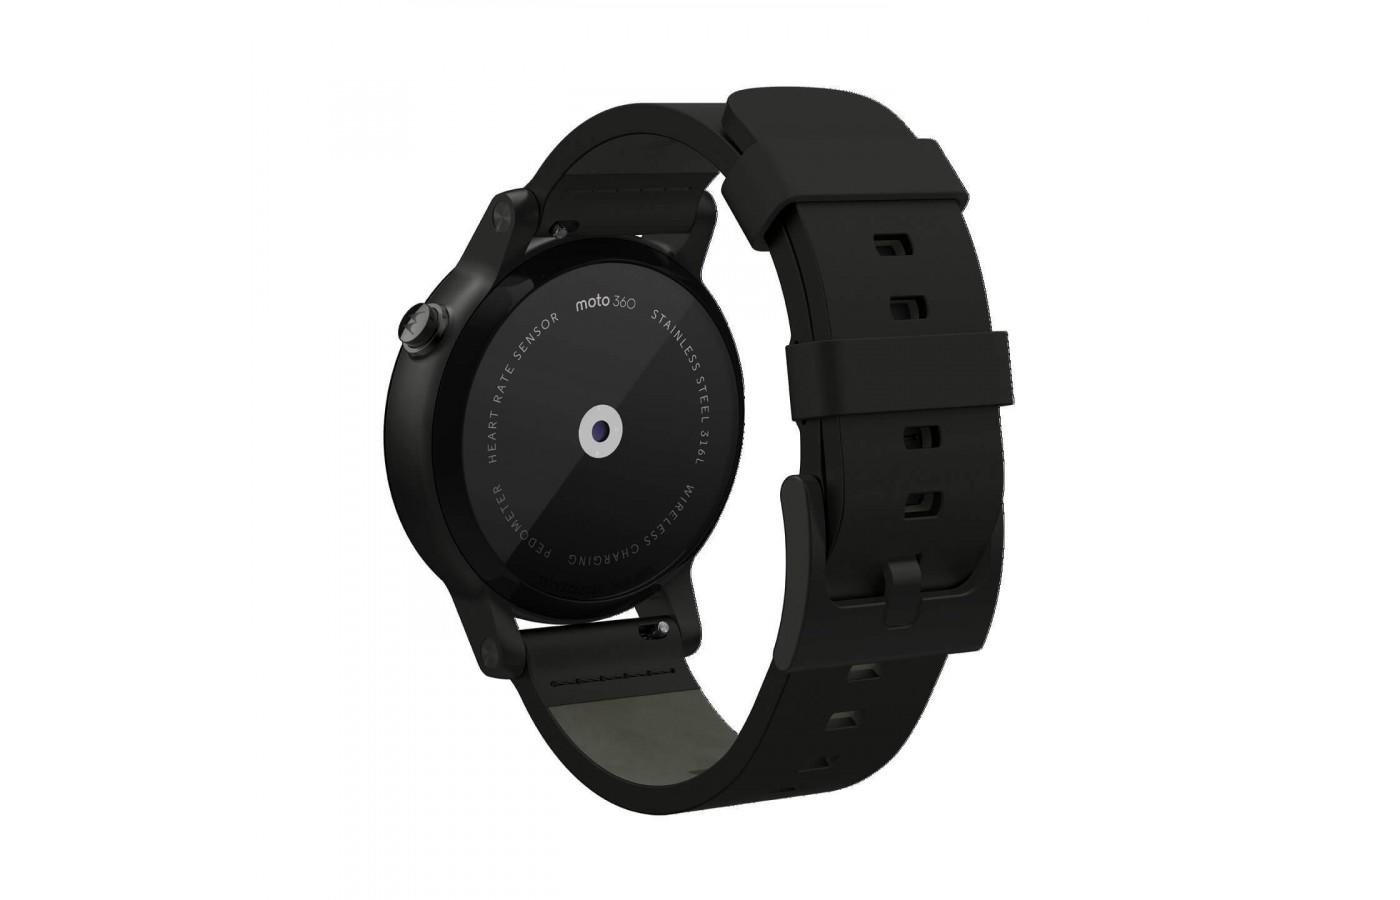 the Motorola Moto 360 (2nd Gen) has a built-in optical heart rate monitor